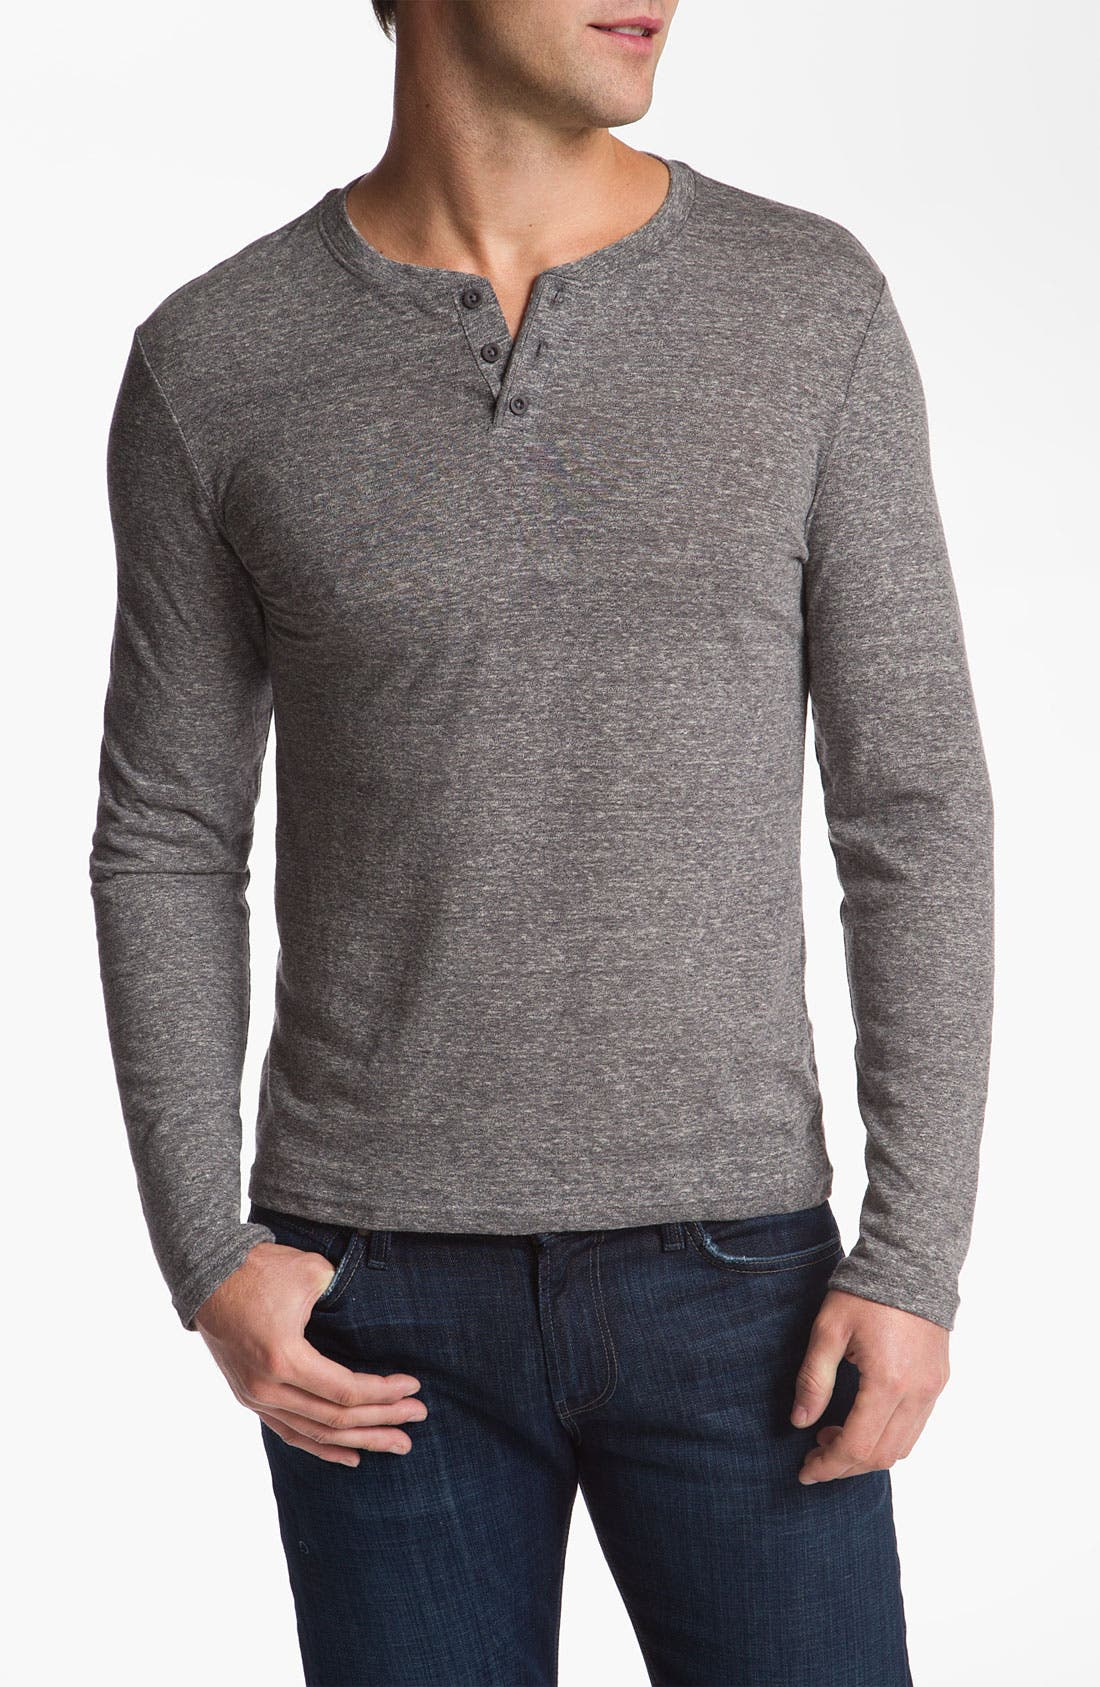 Main Image - The Rail Long Sleeve Henley